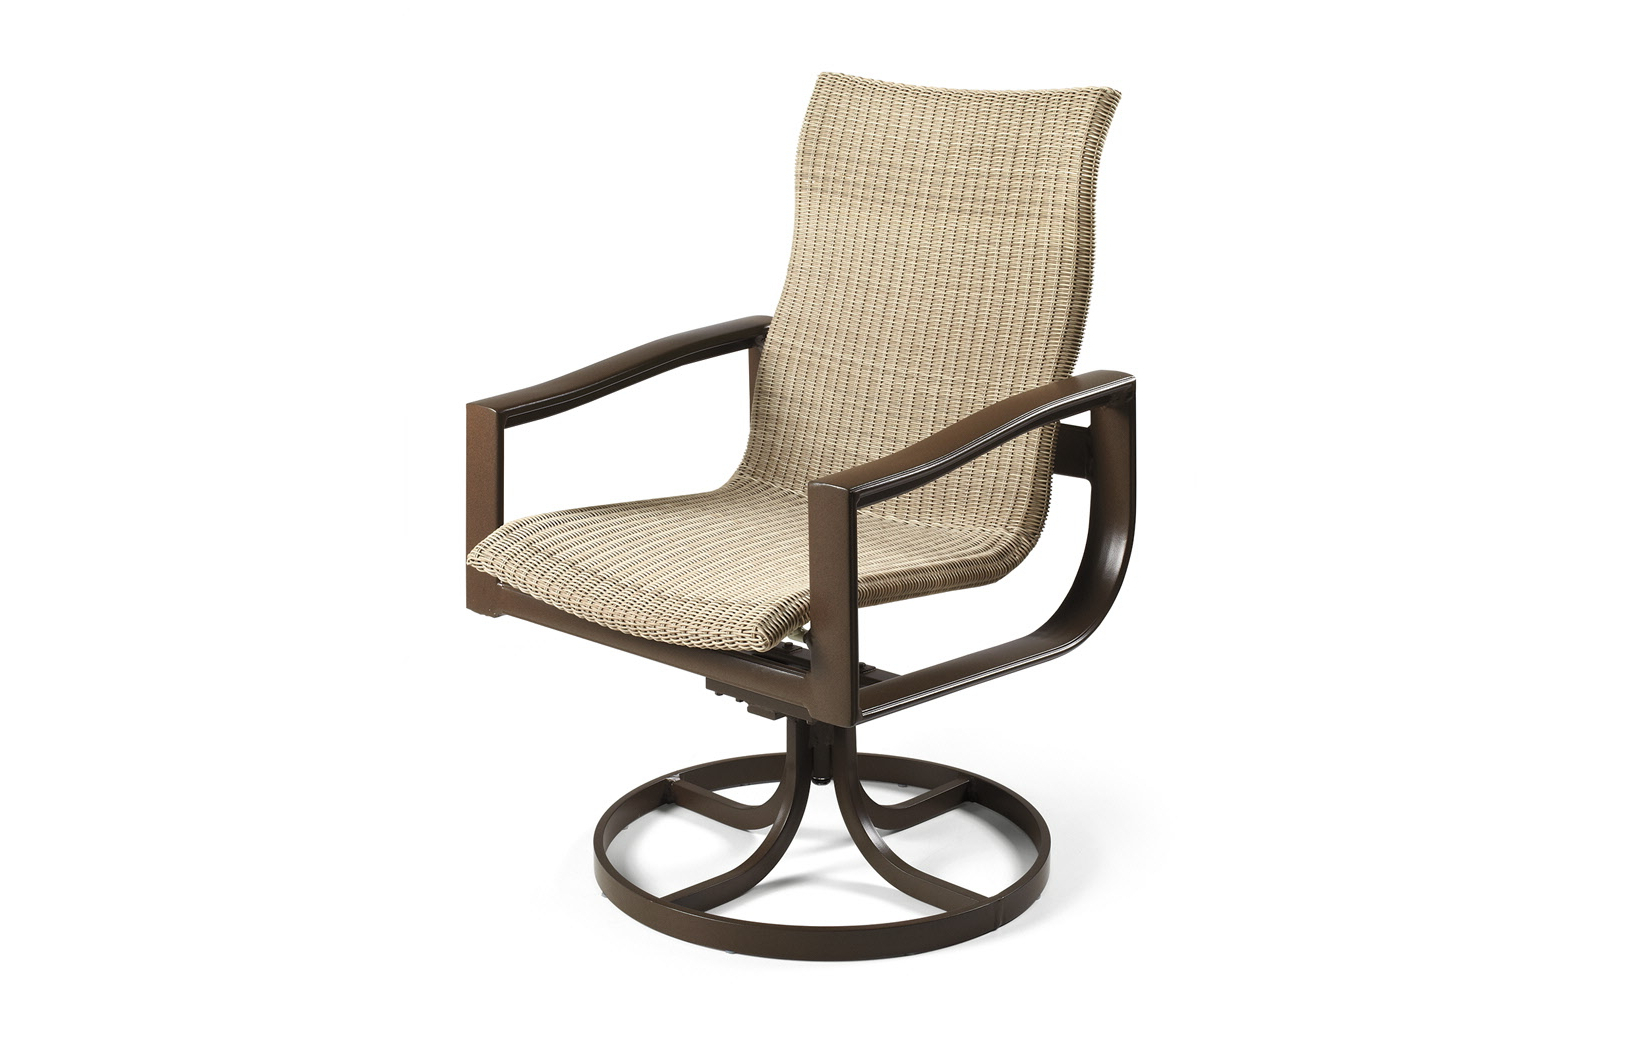 Woven High Back Swivel Chairs With Regard To Fashionable Belvedere Woven Outdoor High Back Swivel Tilt Chair (Gallery 30 of 30)